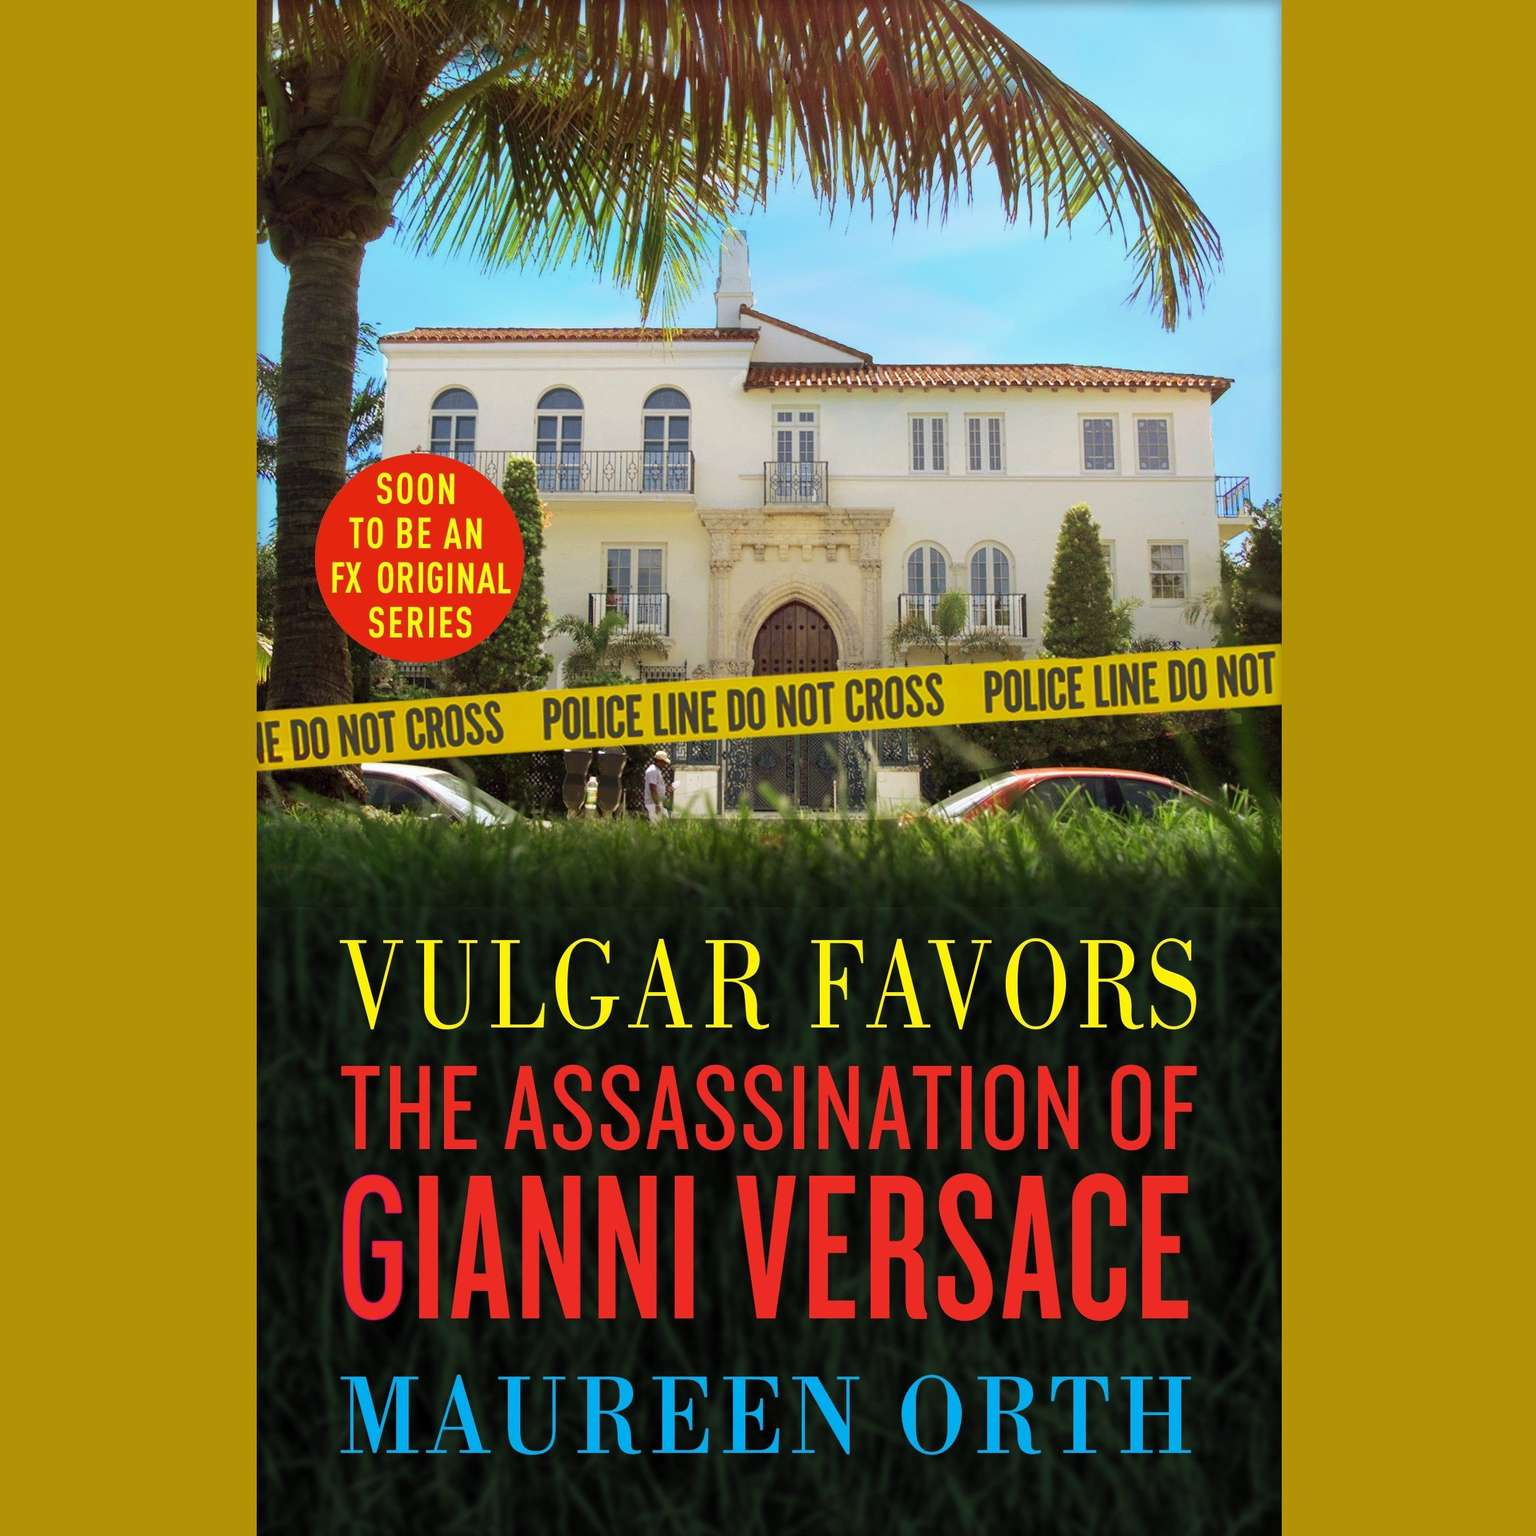 Vulgar Favors: The Assassination of Gianni Versace Audiobook, by Maureen Orth